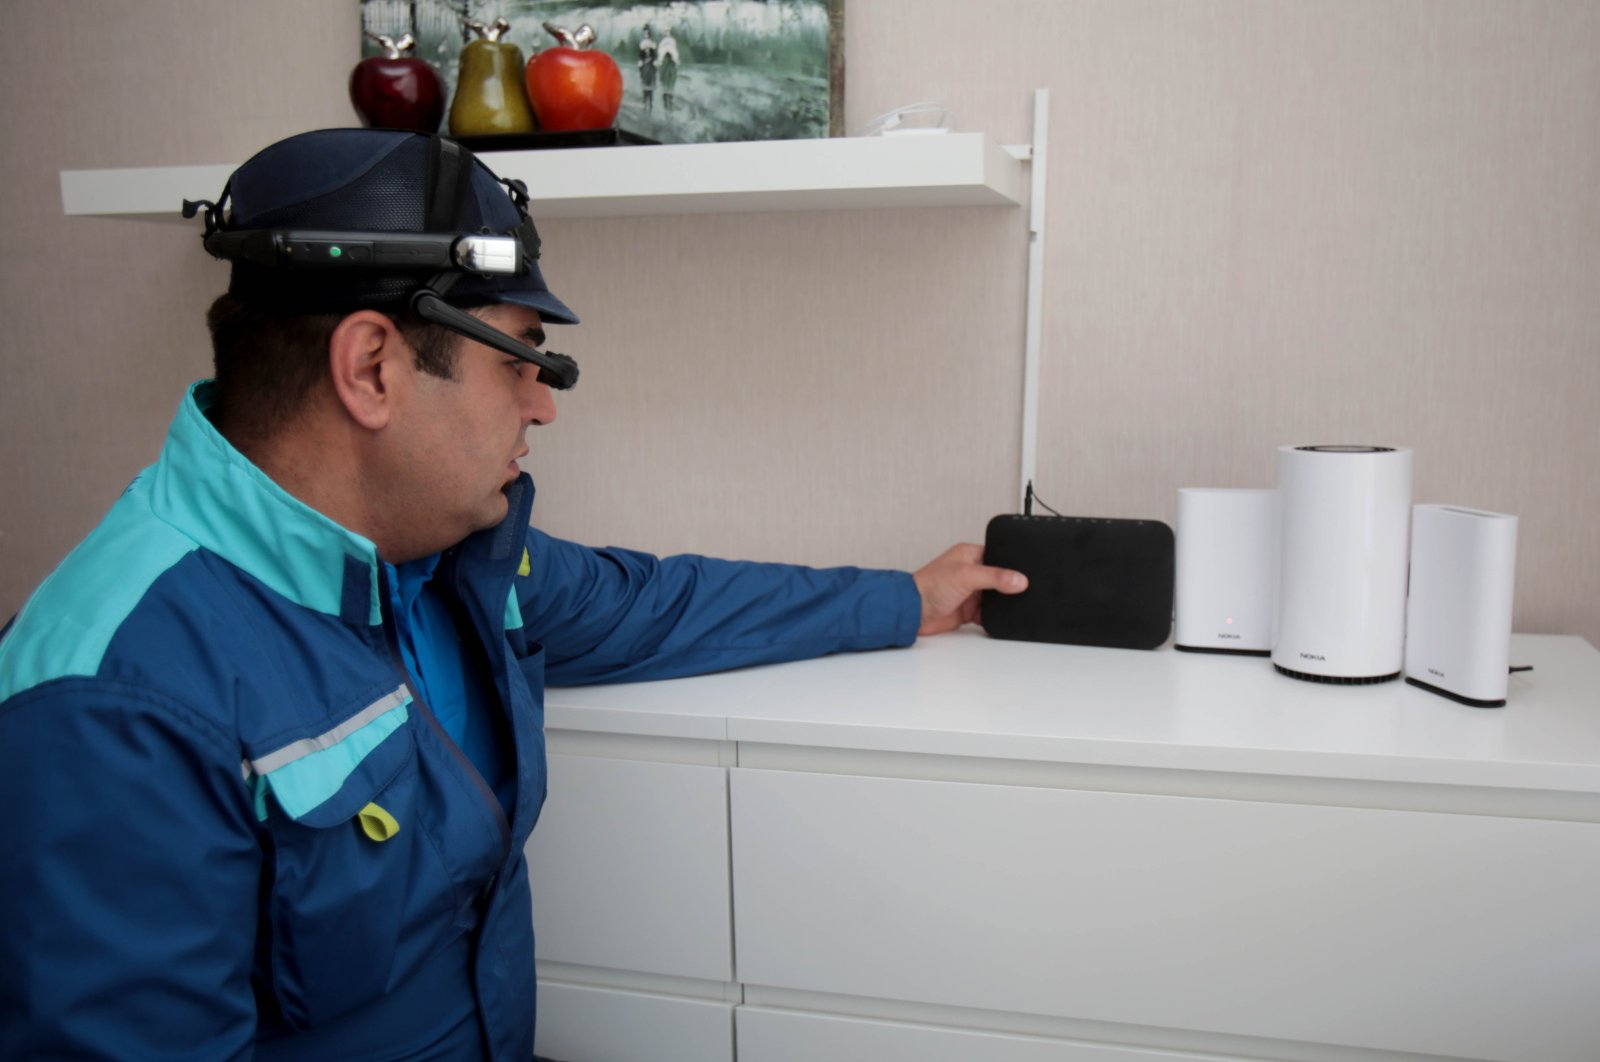 A Türk Telekom field technician equipped with smart glasses checks a modem in this file photo. (Courtesy of Türk Telekom)